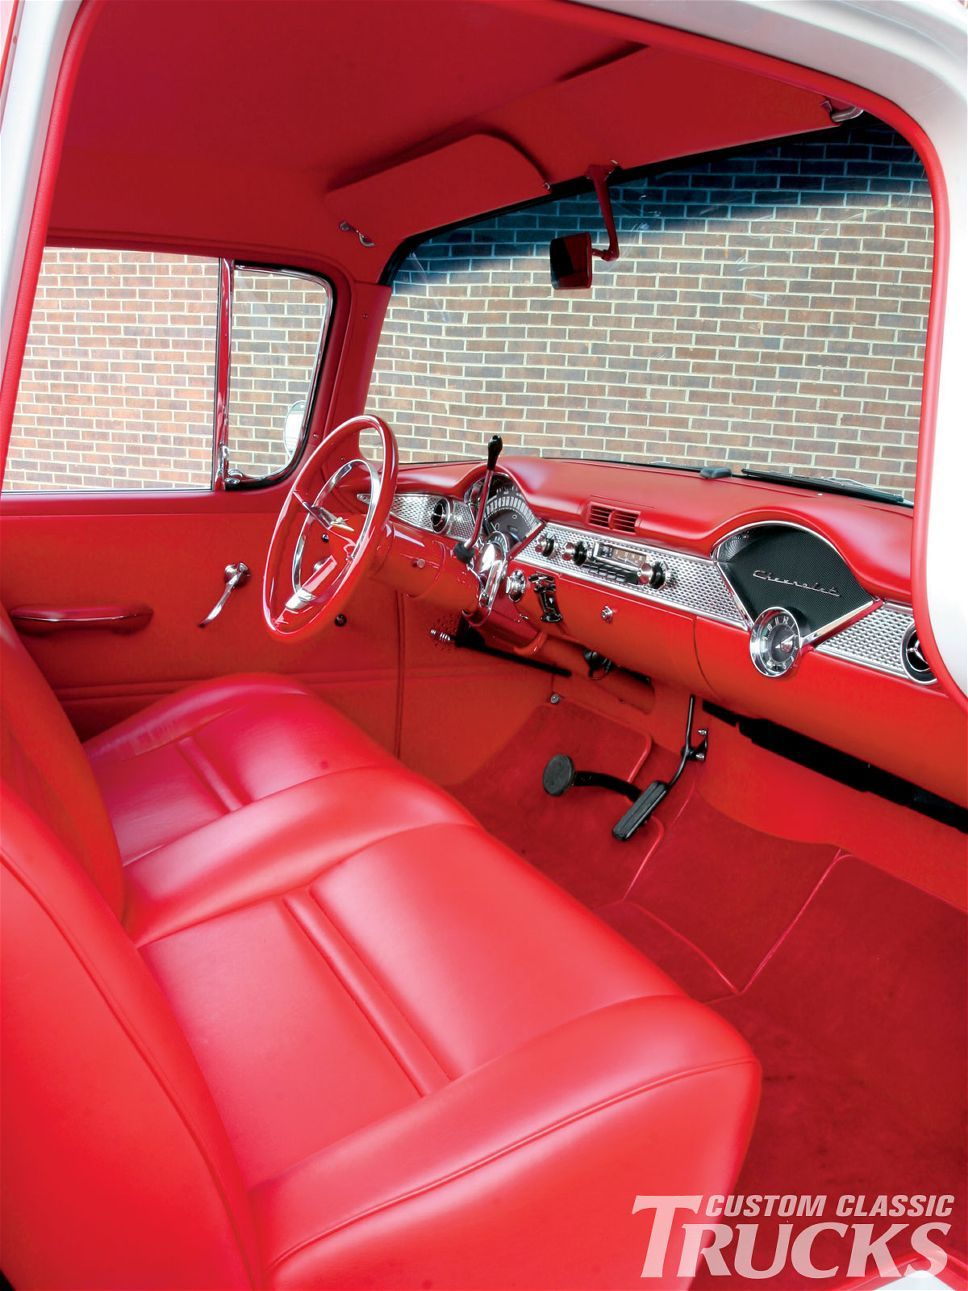 custom interior 1955 chevy cameo pickup truck vintagetreasures 55chevy vintage treasures. Black Bedroom Furniture Sets. Home Design Ideas